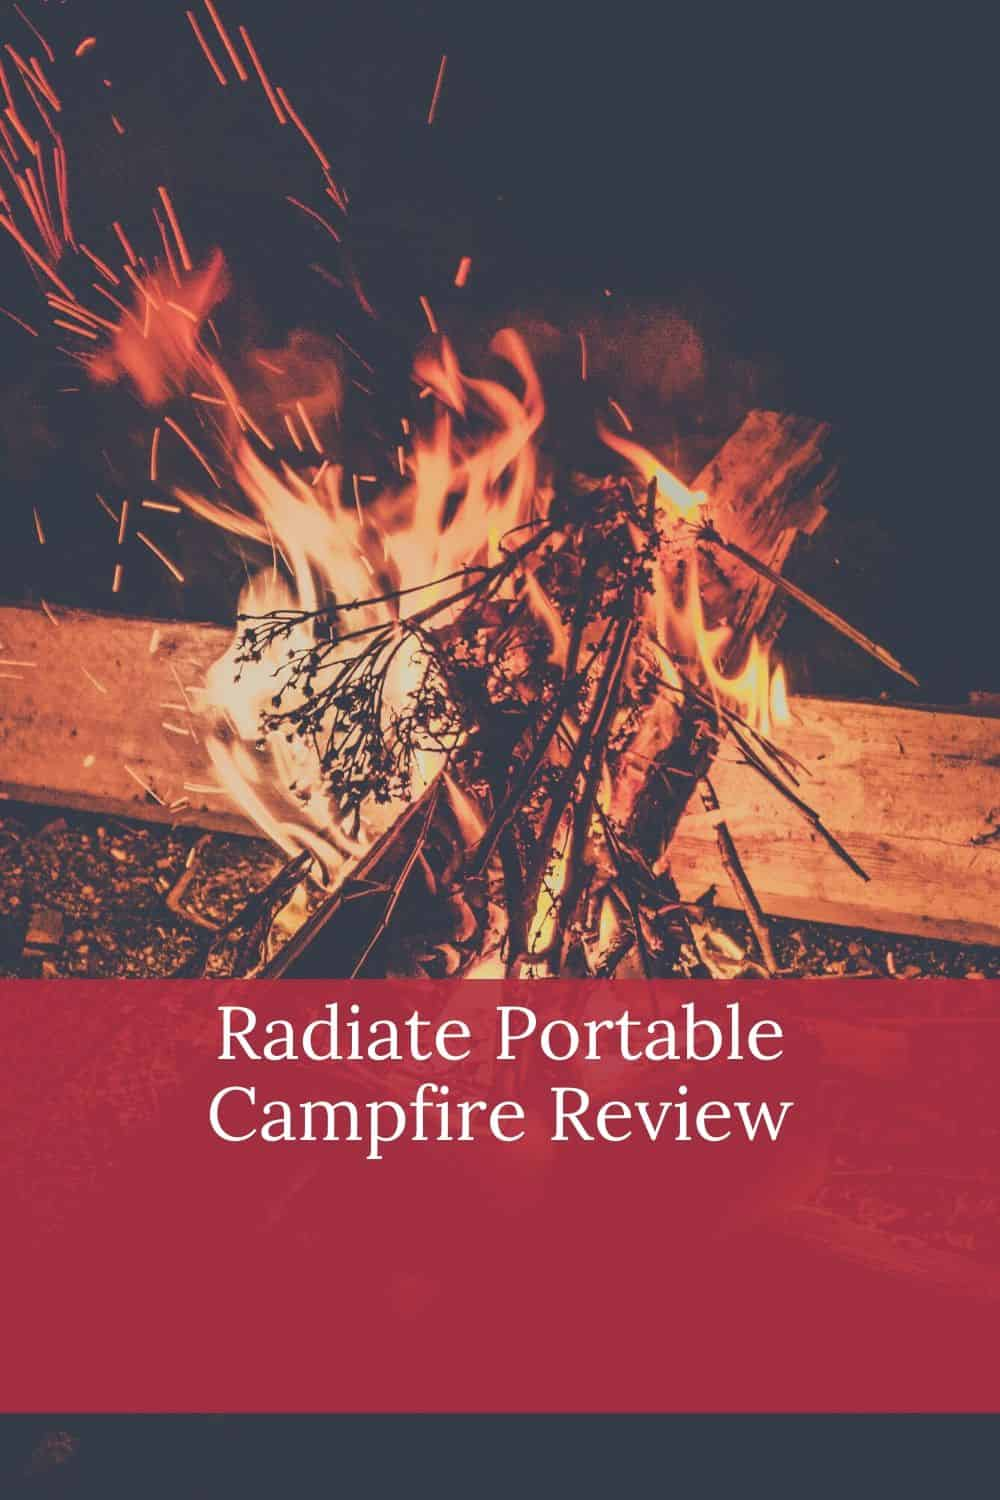 Pinterest image for Radiate Portable Campfire Review